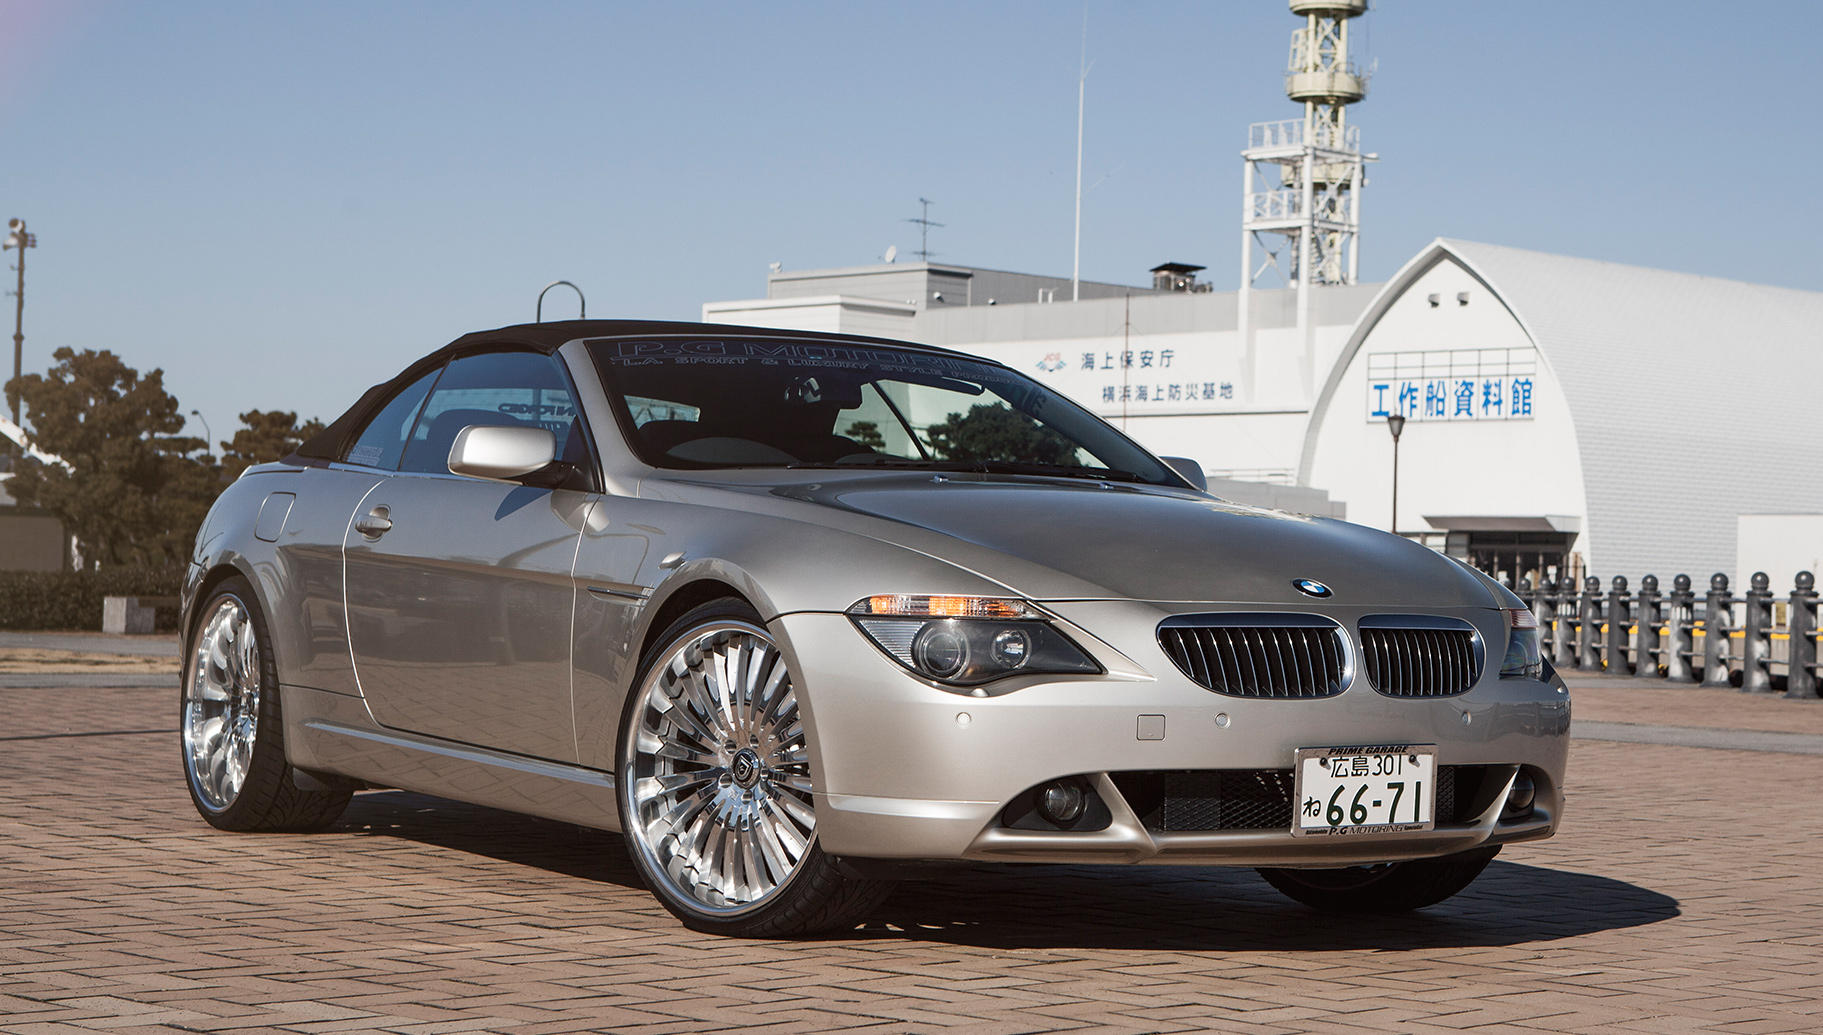 Custom LF-734 on the BMW 6-Series.